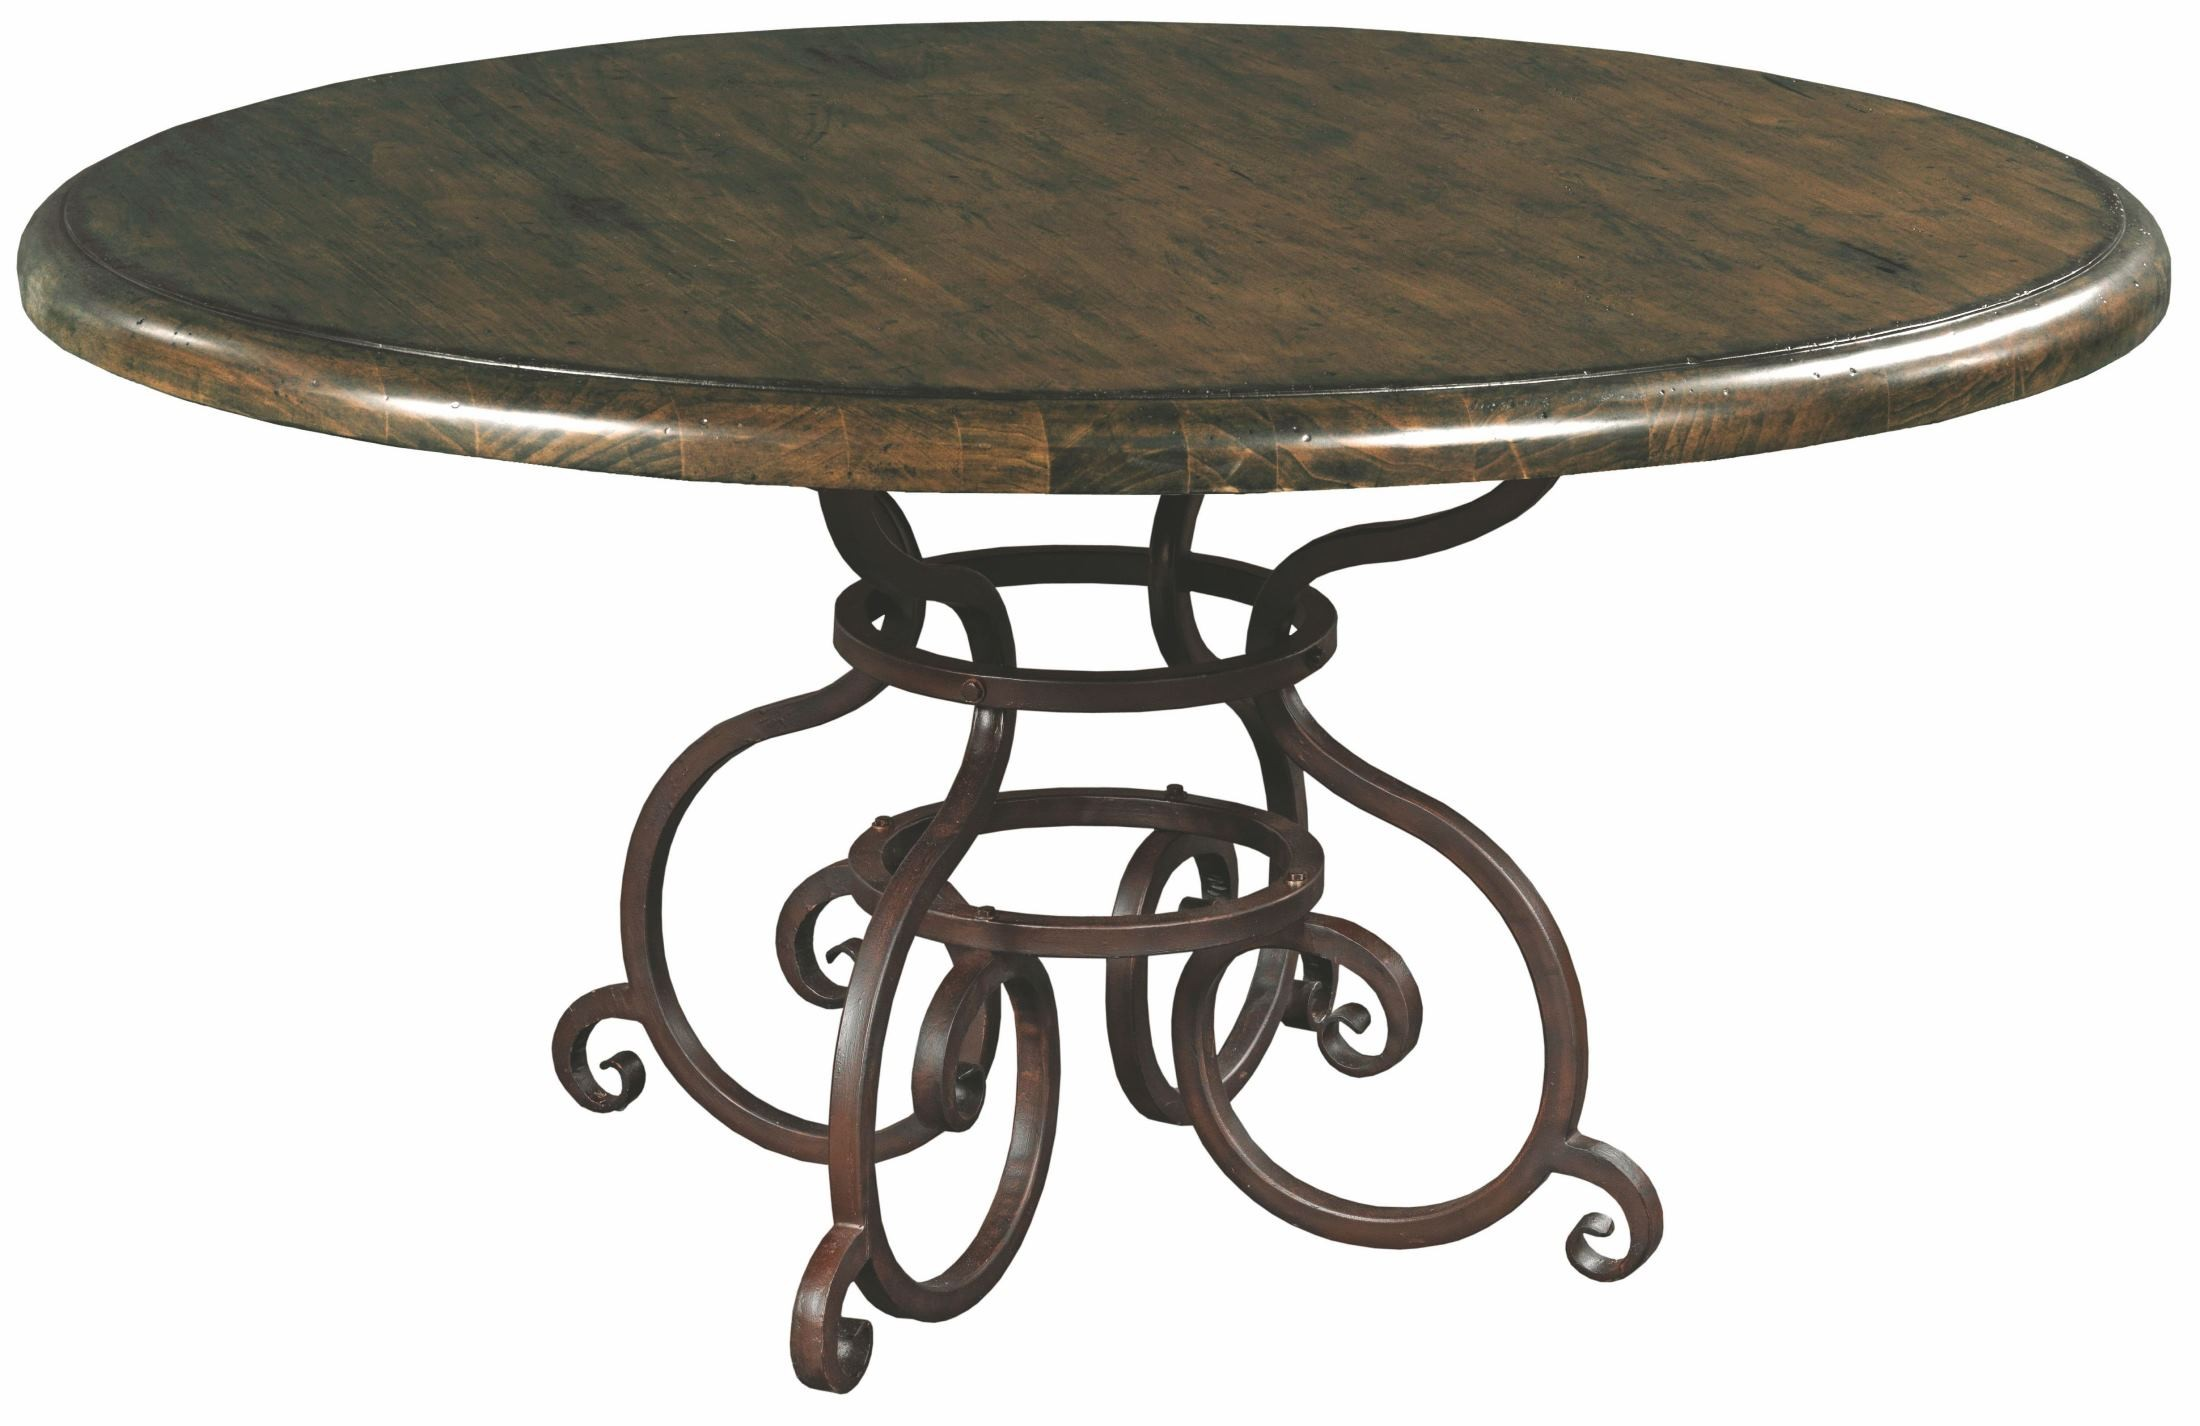 Artisans Shoppe 60quot Black Forest Round Dining Table With  : 90 2179 from colemanfurniture.com size 2200 x 1426 jpeg 281kB